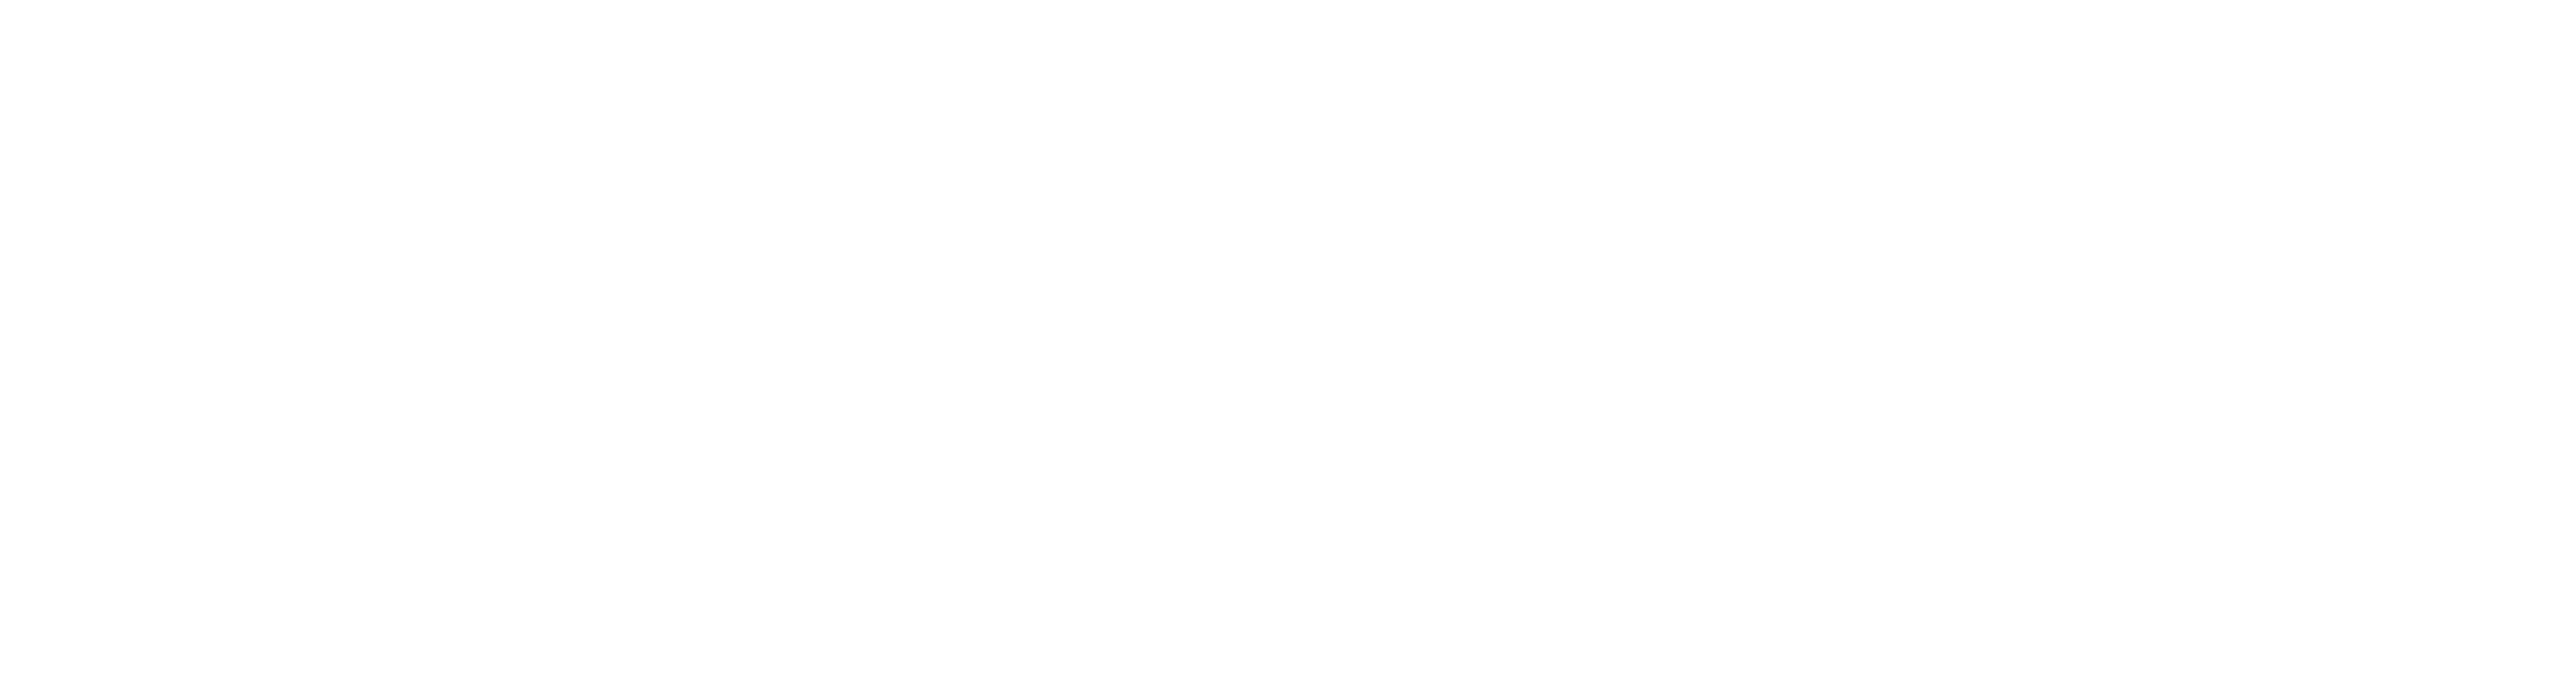 Qwenty - DÉVELOPPEMENT, CLOUD, BUSINESS INTELLIGENCE À STRASBOURG